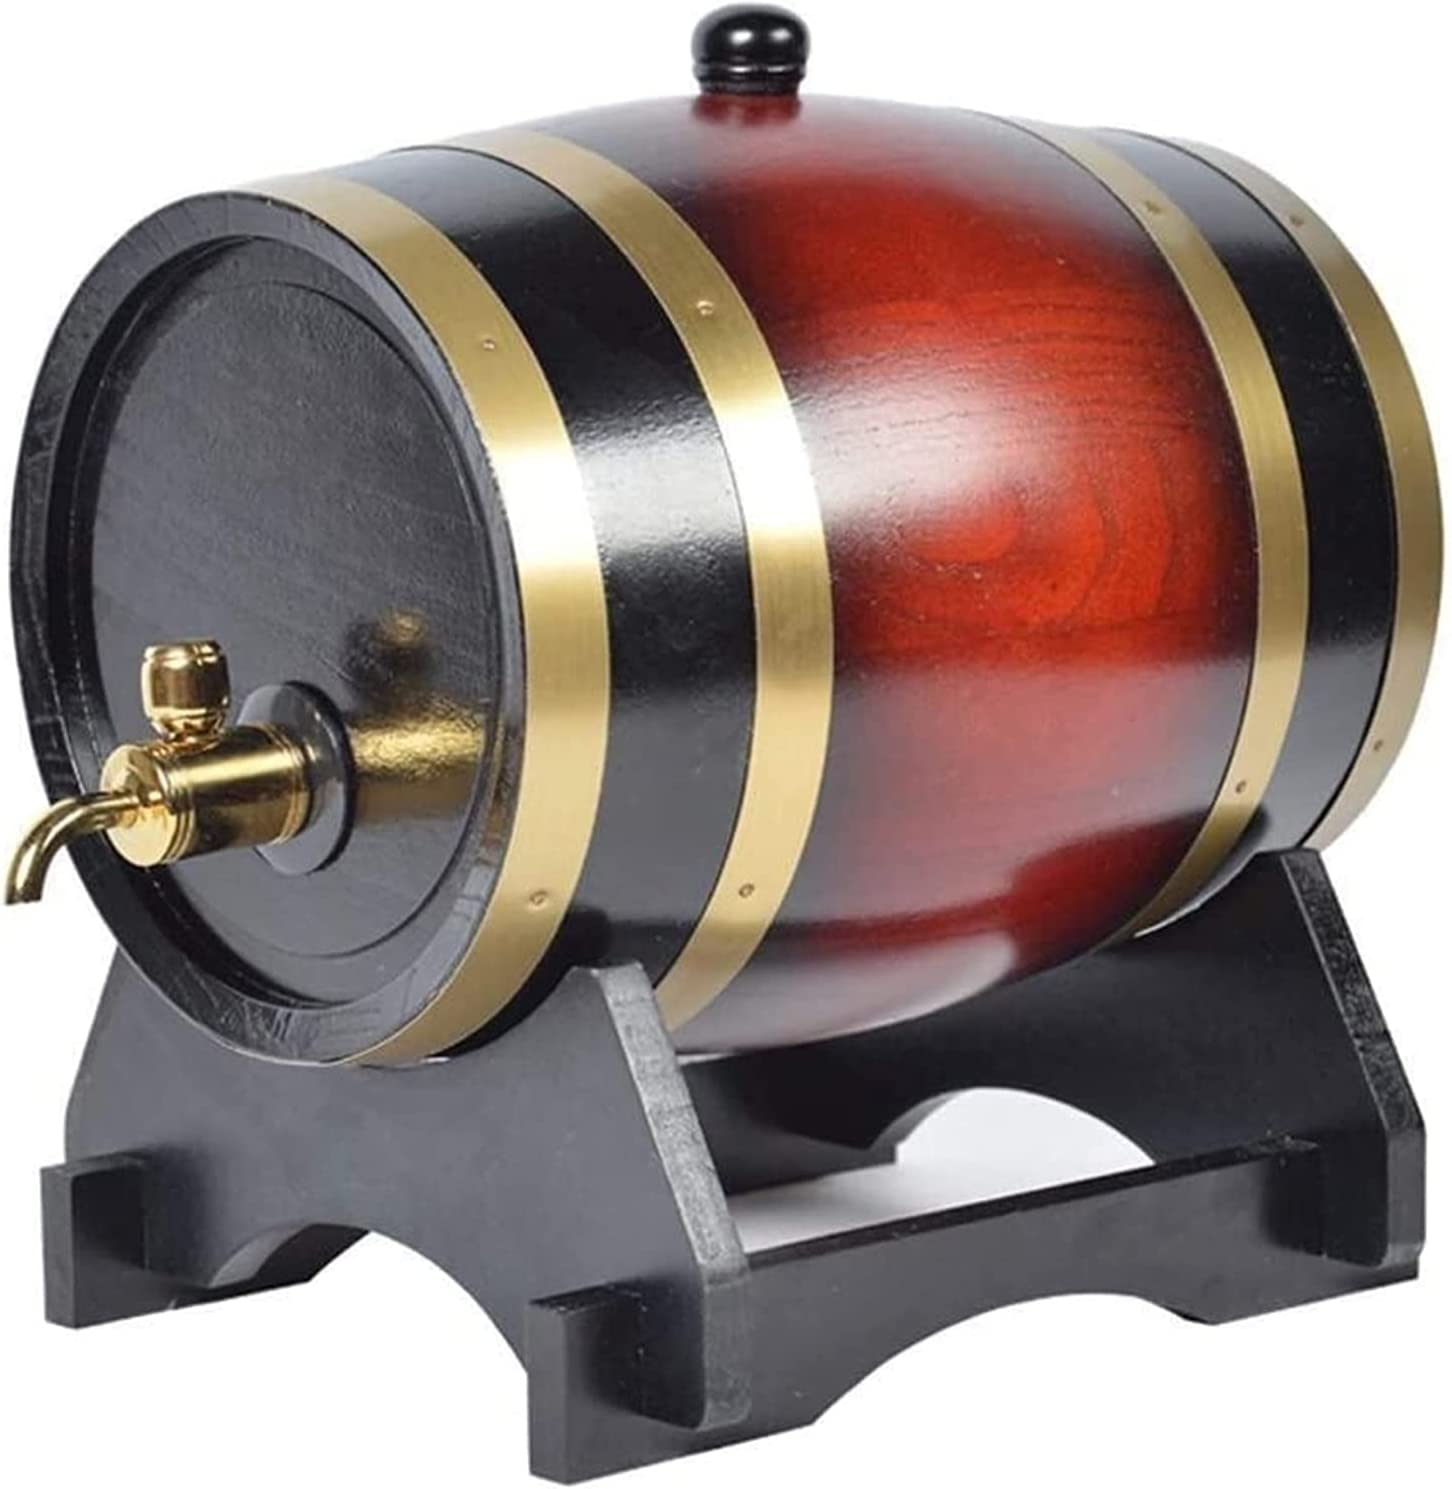 Whiskey Decanter Wine Decanter Oak Barrel, 20L Vintage Oak Aged Wine Storage Bucket with Faucet Water Dispenser Wine red,Wine Red Decanter (Size : 20l)